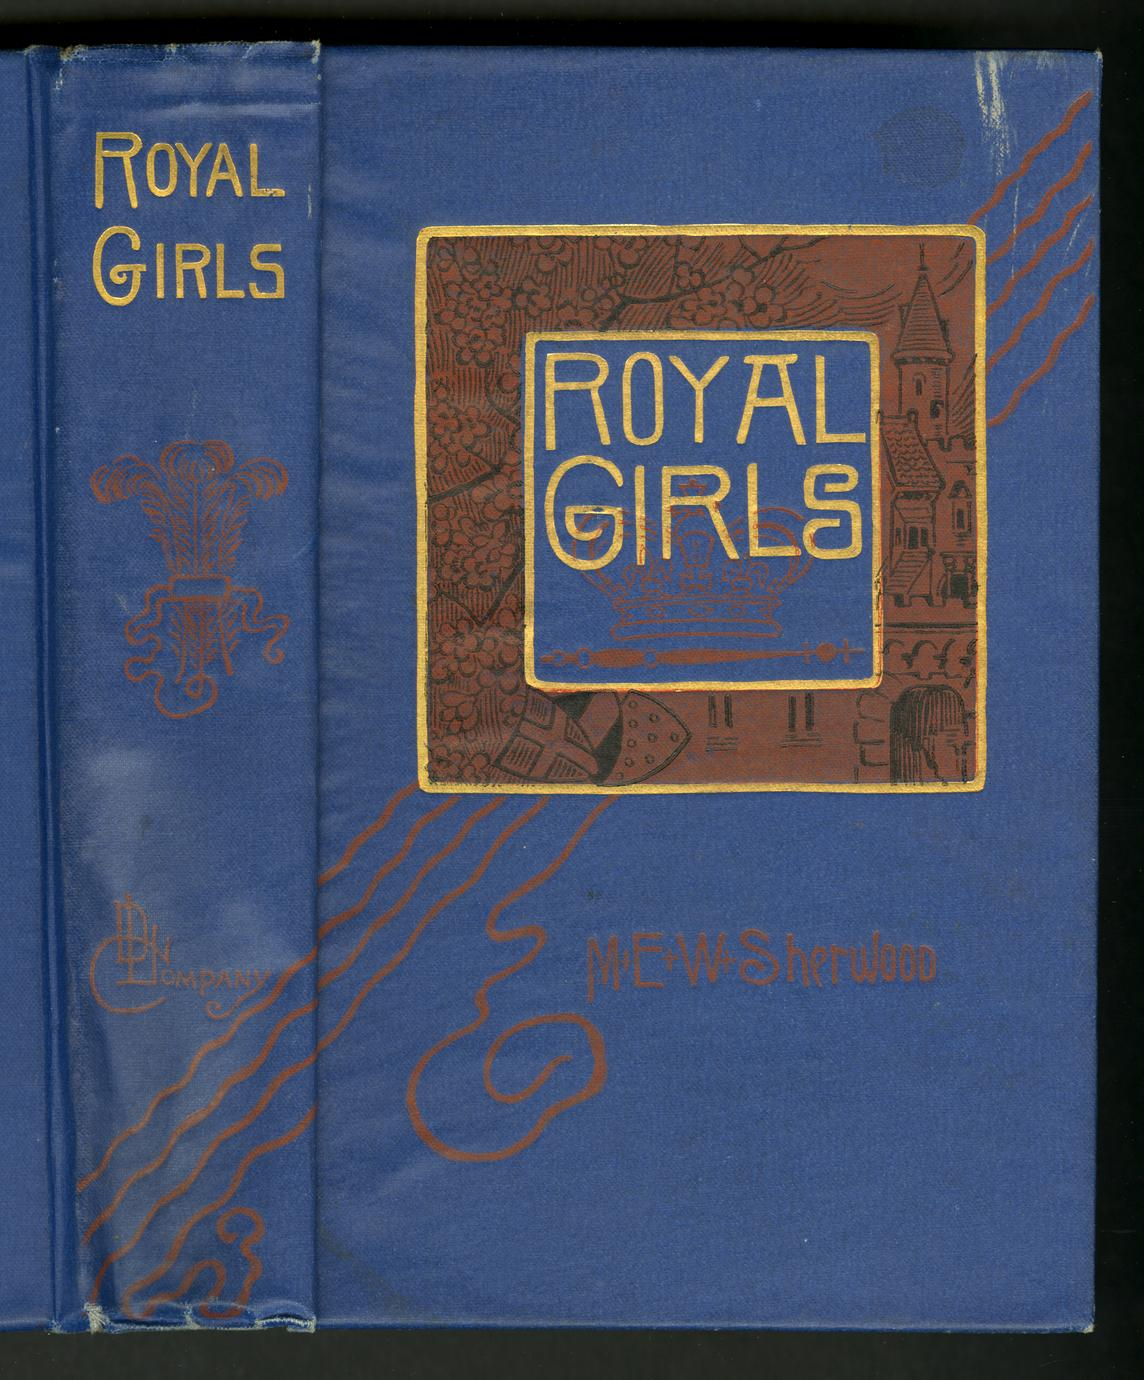 Royal girls and royal courts (1 of 2)